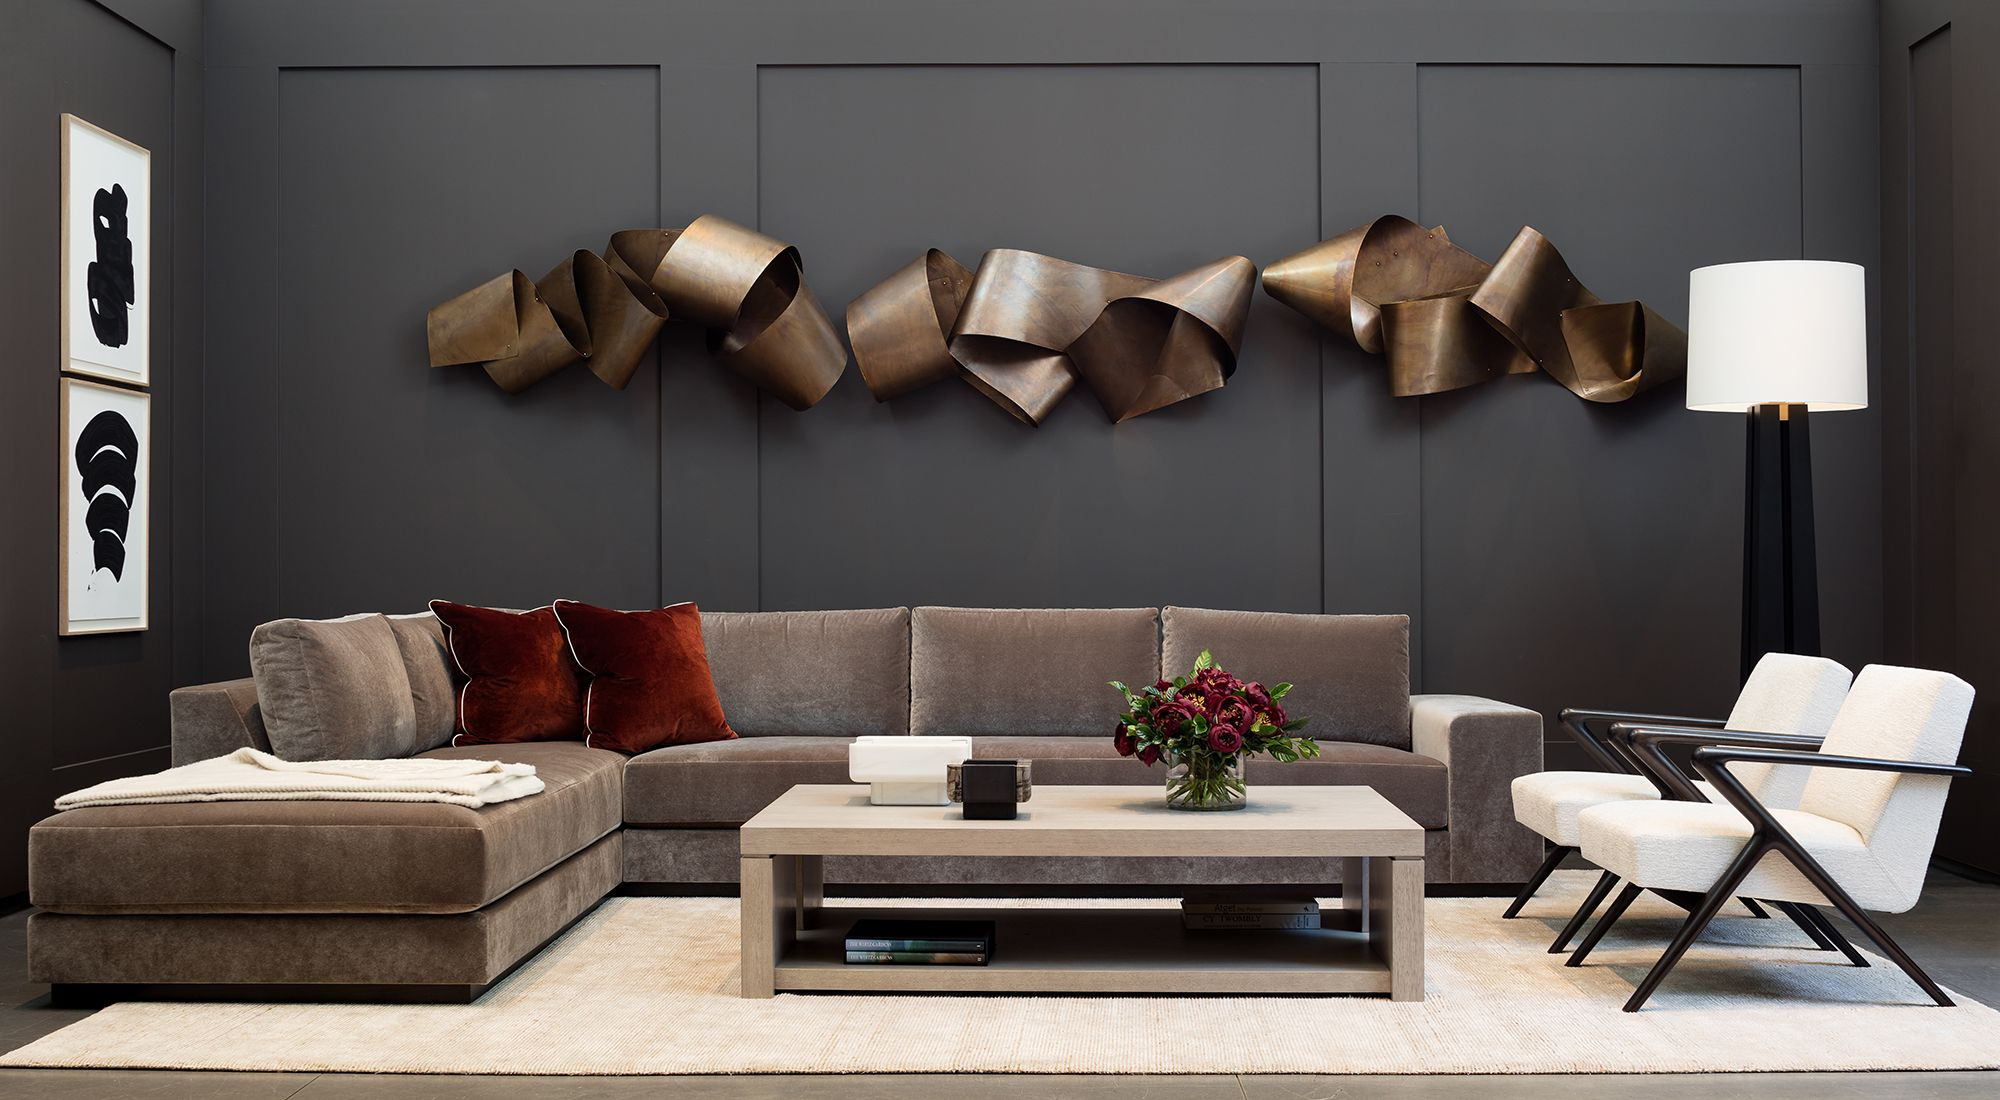 Holly hunt modern metal wall sculpture in contemporary - Picture wall ideas for living room ...